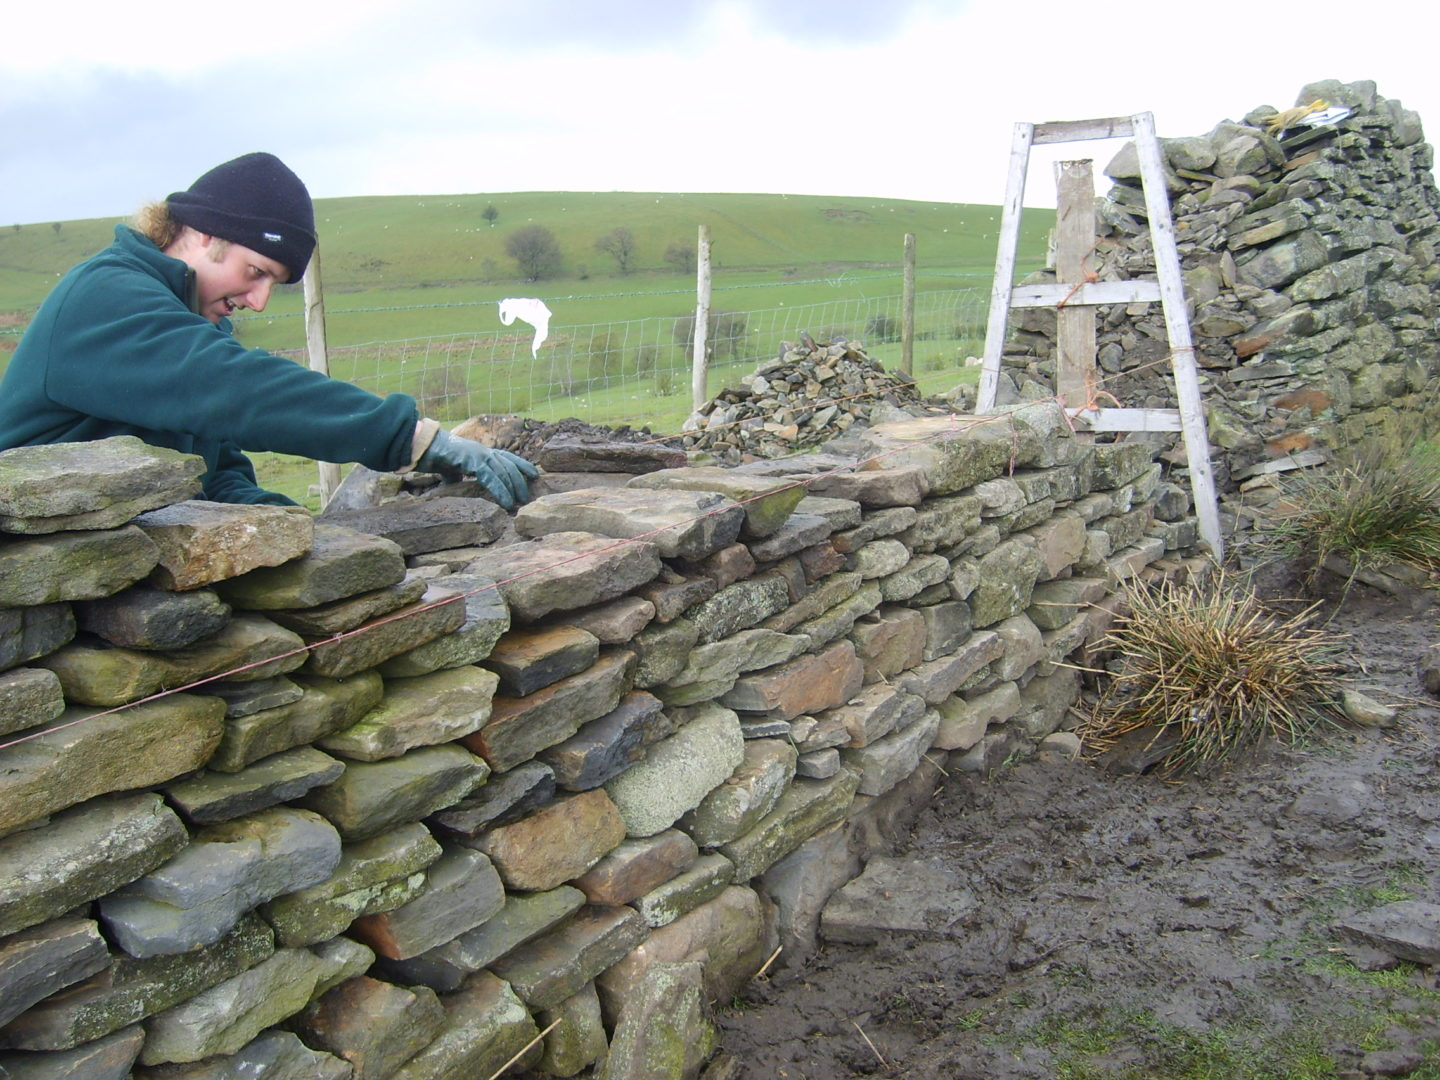 Environmental Conservation & Dry Stone Walling